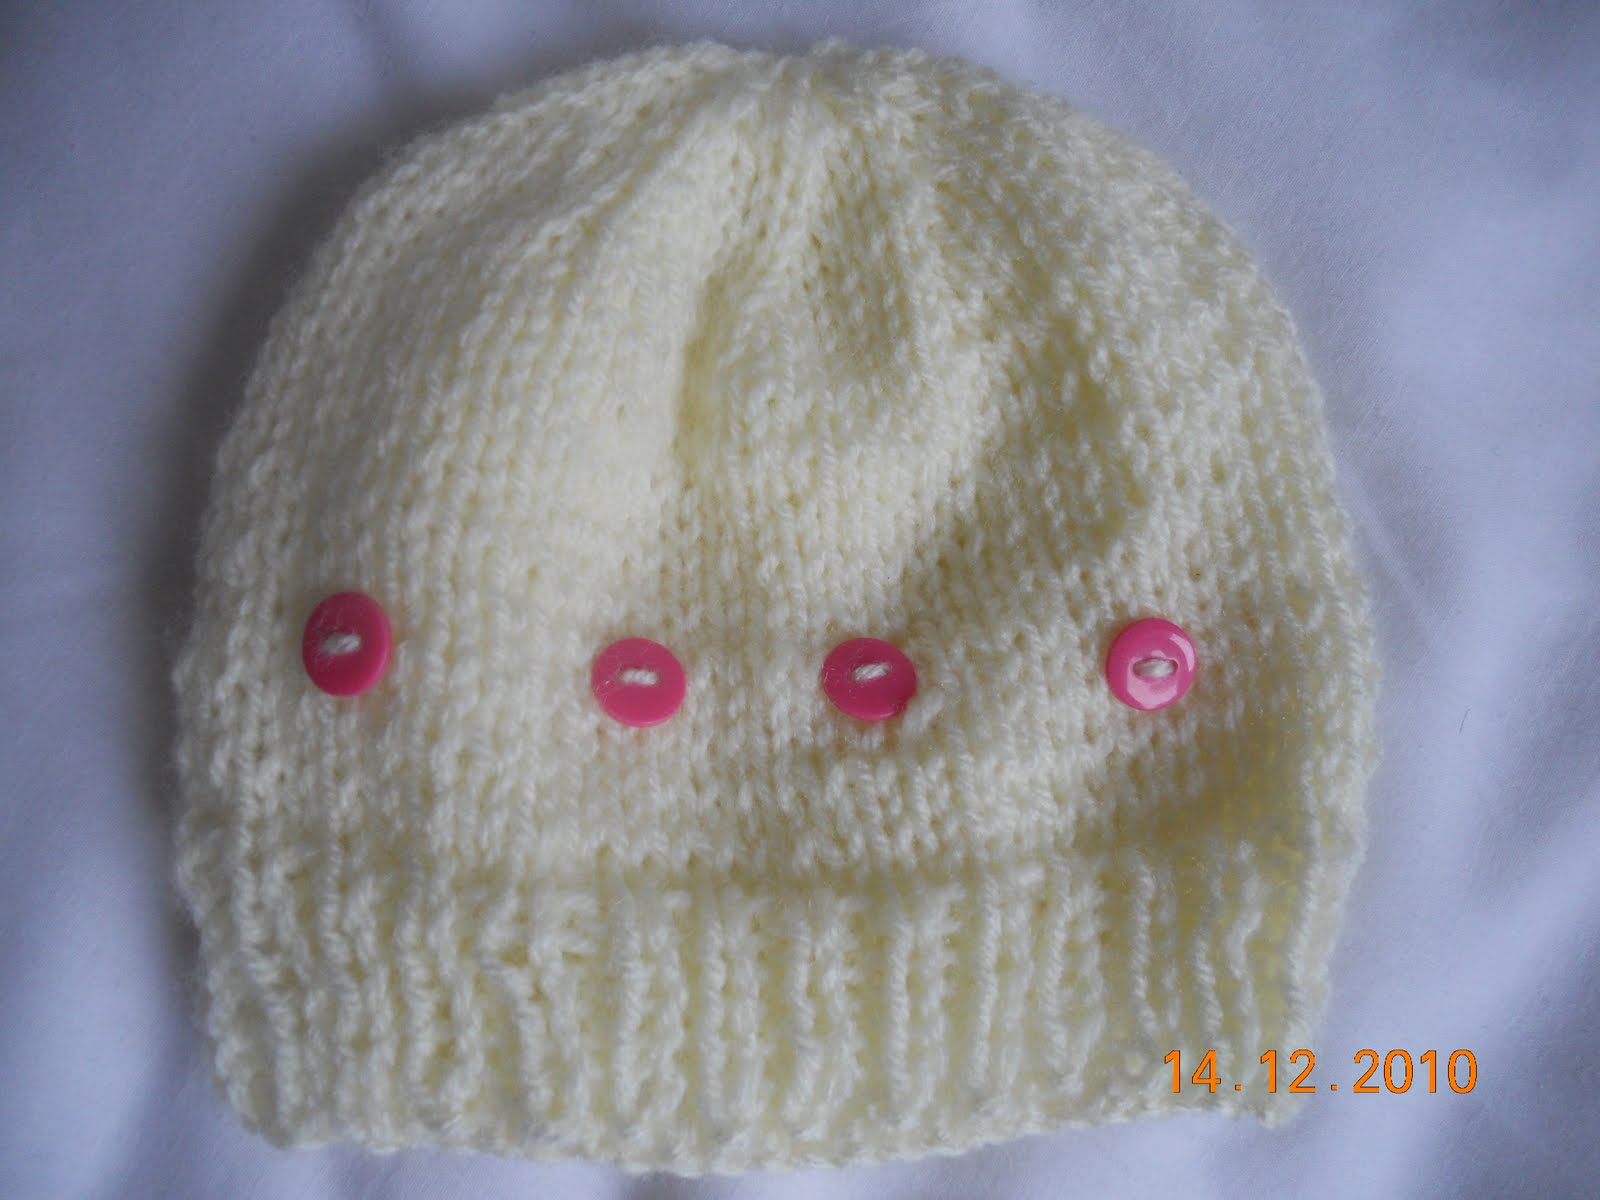 Easy Knitting Patterns For Beginners Baby Hats : Simple, Easy Knitting Baby Hat for Beginners ~ Sheetals Nook